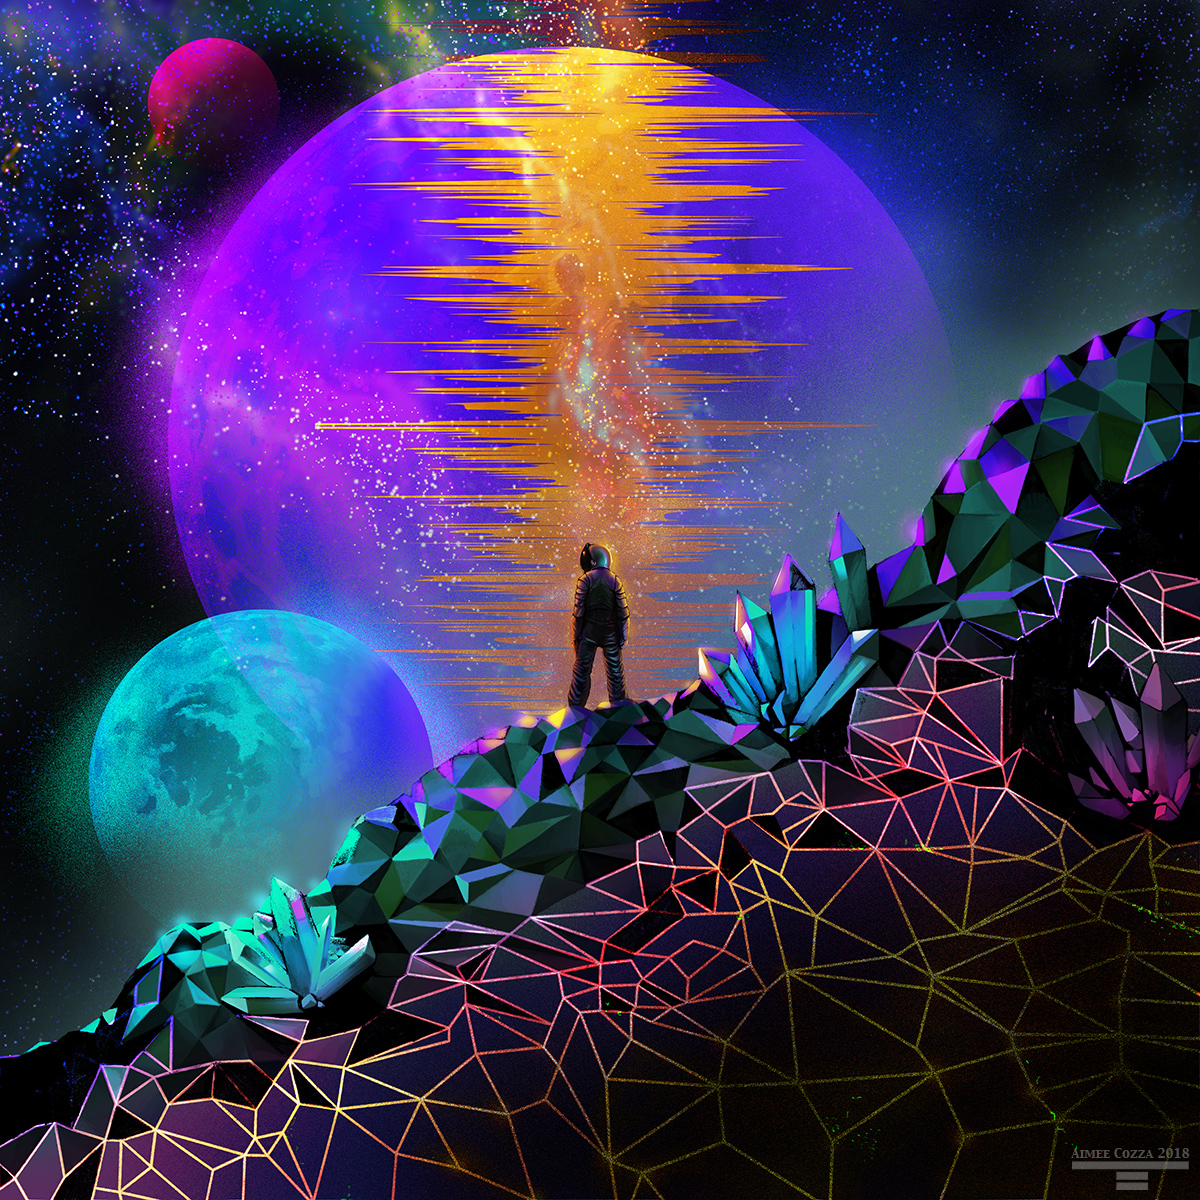 A colorful depiction of an astronaut standing along a sharp ridge on an alien world. Underfoot are various crystals of shapes and sizes. On the horizon are three moons. The largest moon is dead center, framing the astronaut.